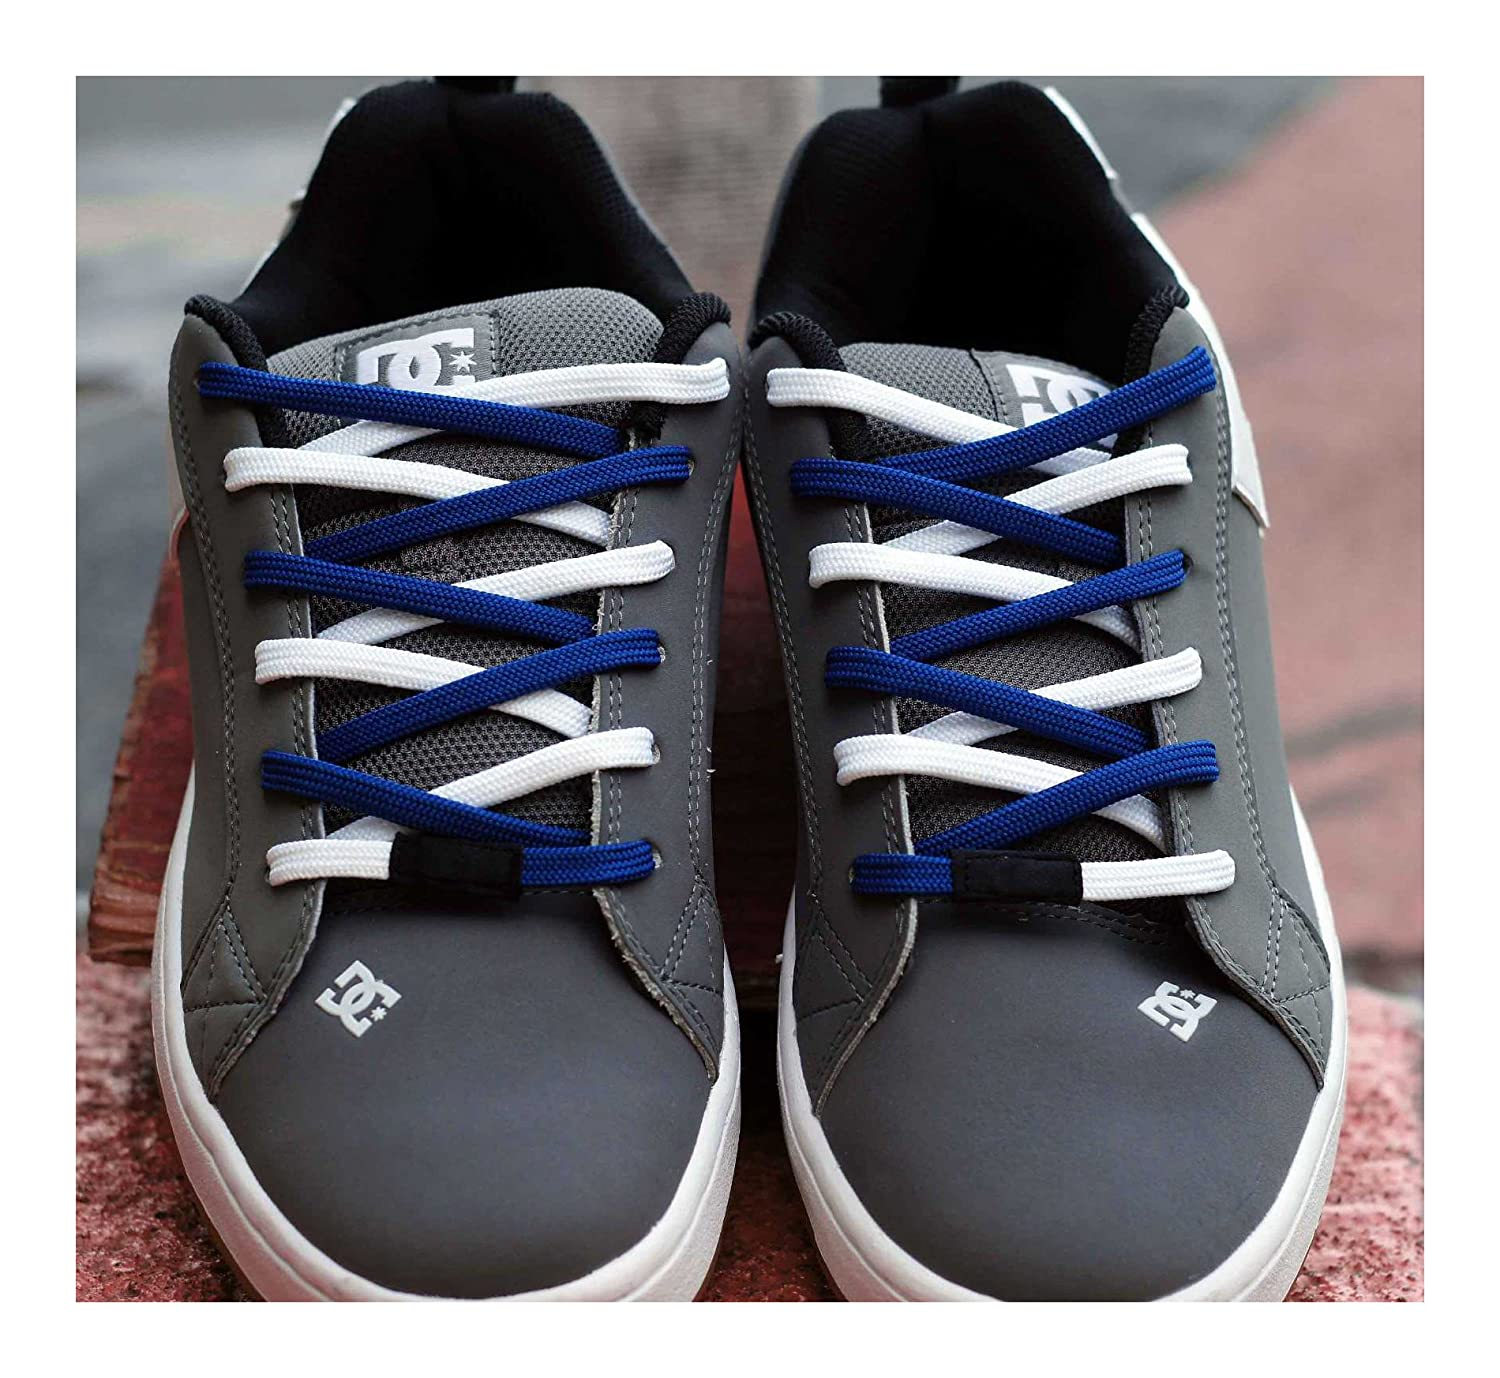 Amazon.com: Easy Tie Shoe Laces - Dual colored, waxed, shoelaces ...